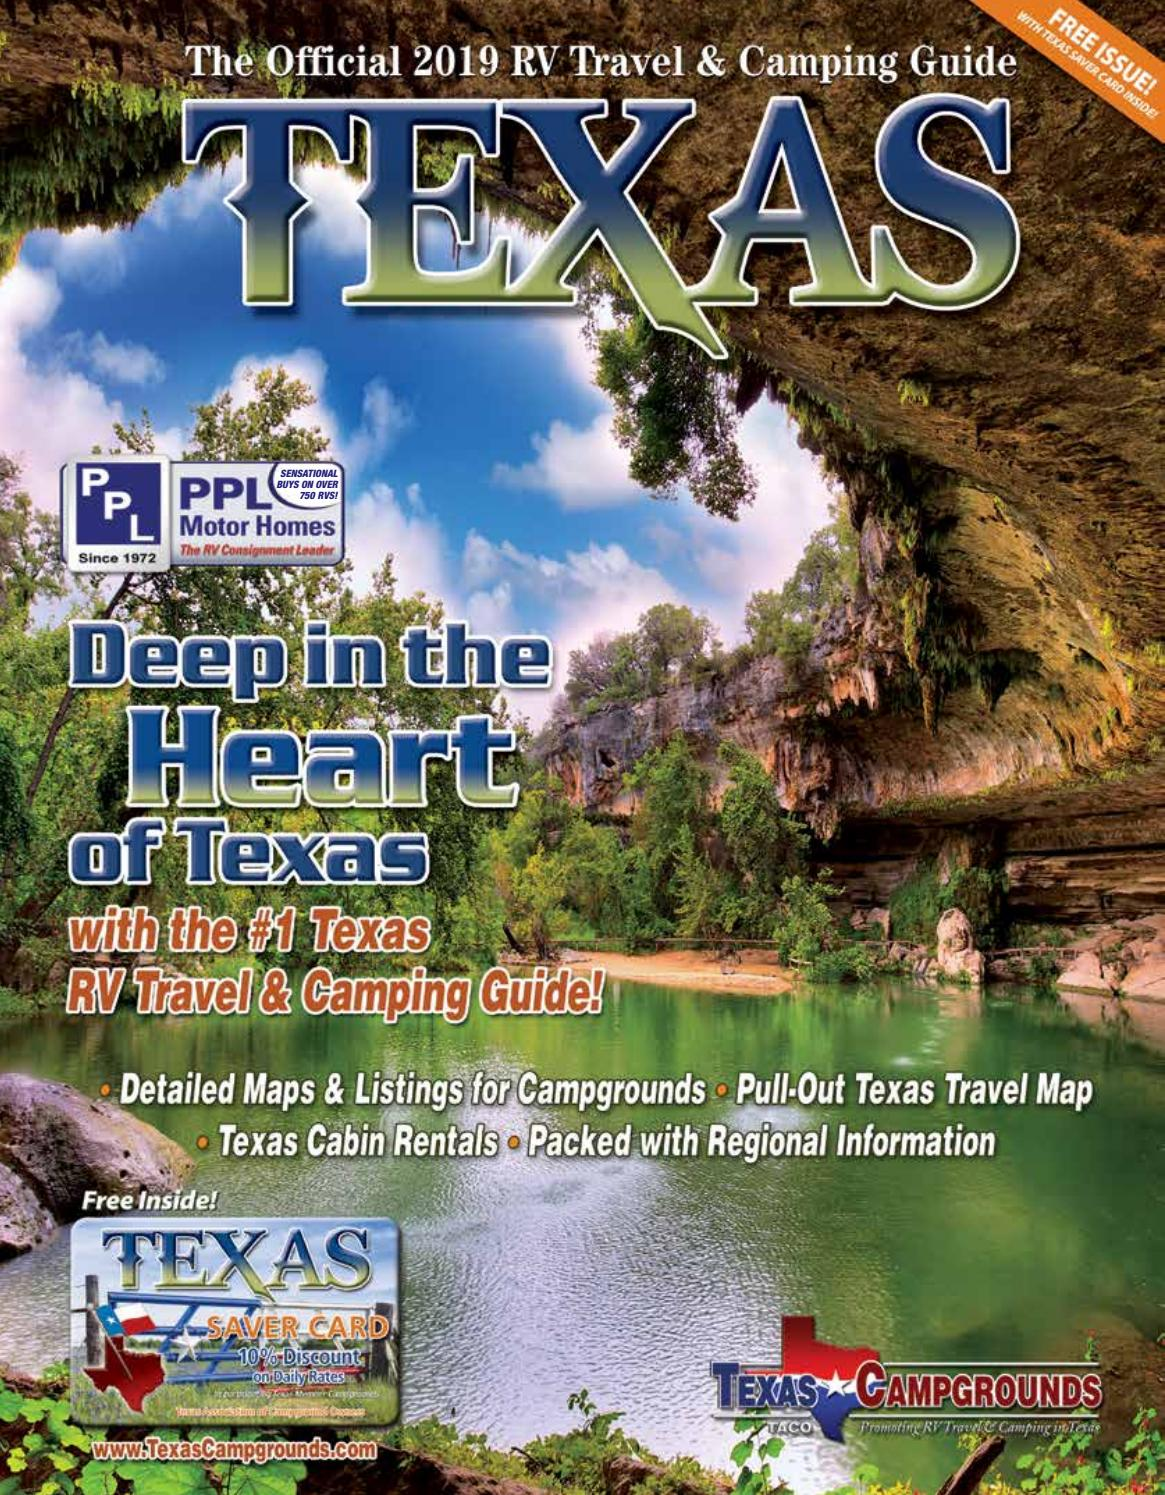 heartland the plete seasons 1 10 set on dvd pristine a place to call home complete series 2019 RV Travel u0026 Camping Guide to Texas by AGS-Texas Advertising - issuu